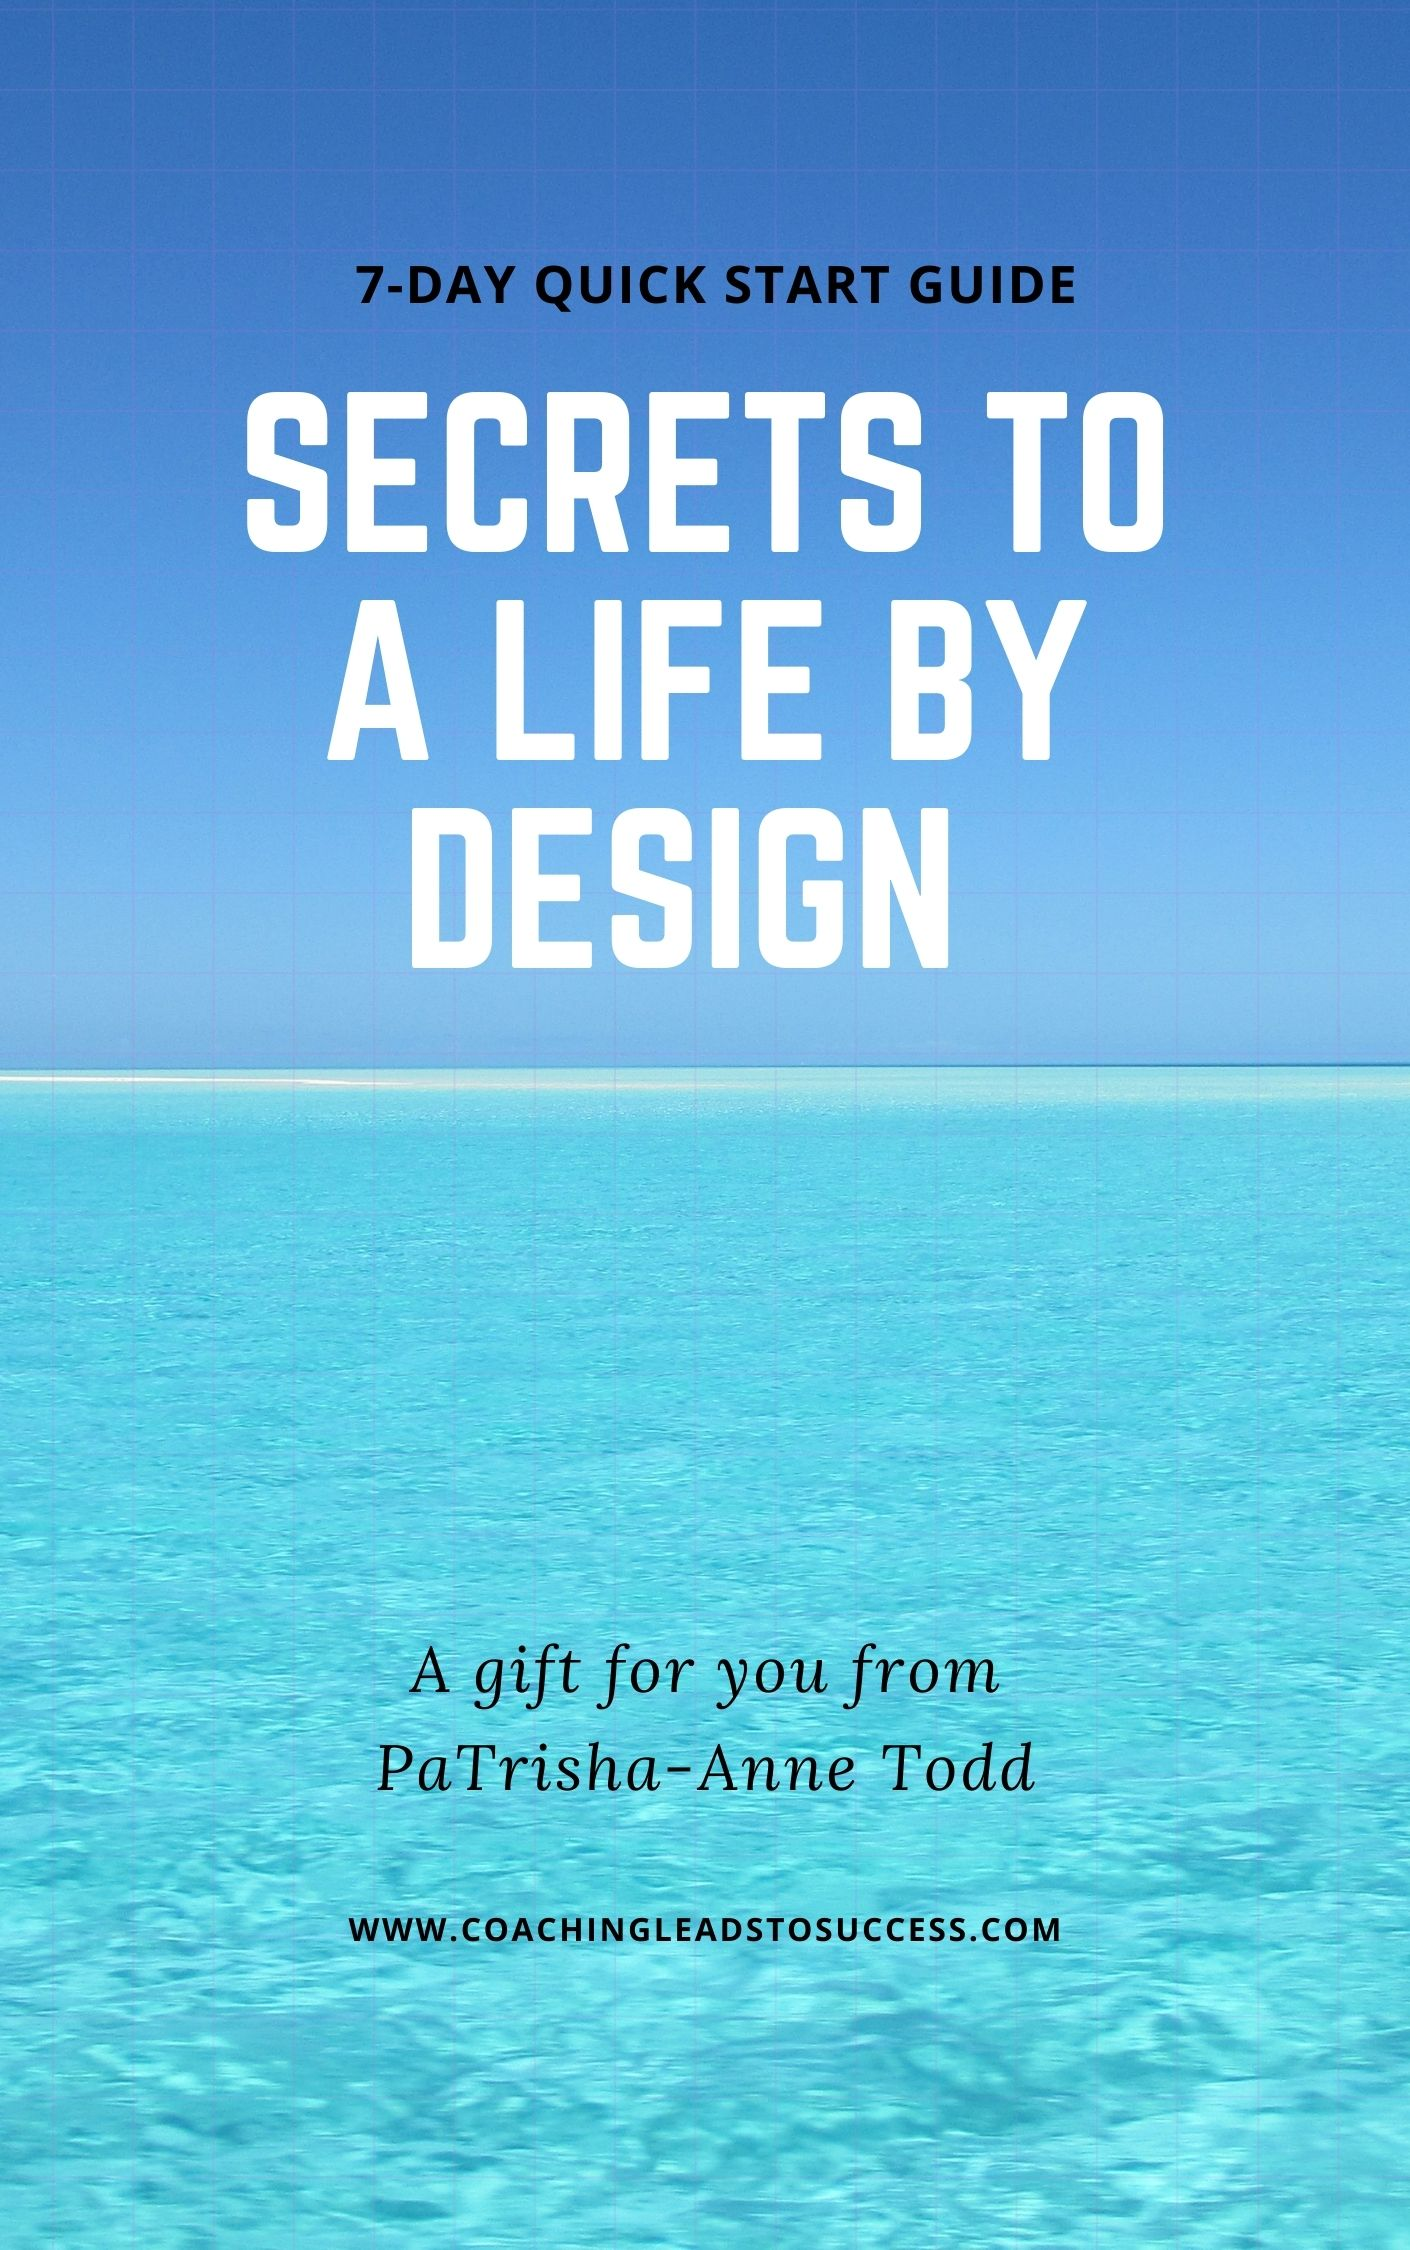 Secrets To A Life By Design a 7 day quick start guide, a gift for you from  PaTrisha-Anne Todd at www.CoachingLeadsToSuccess.com